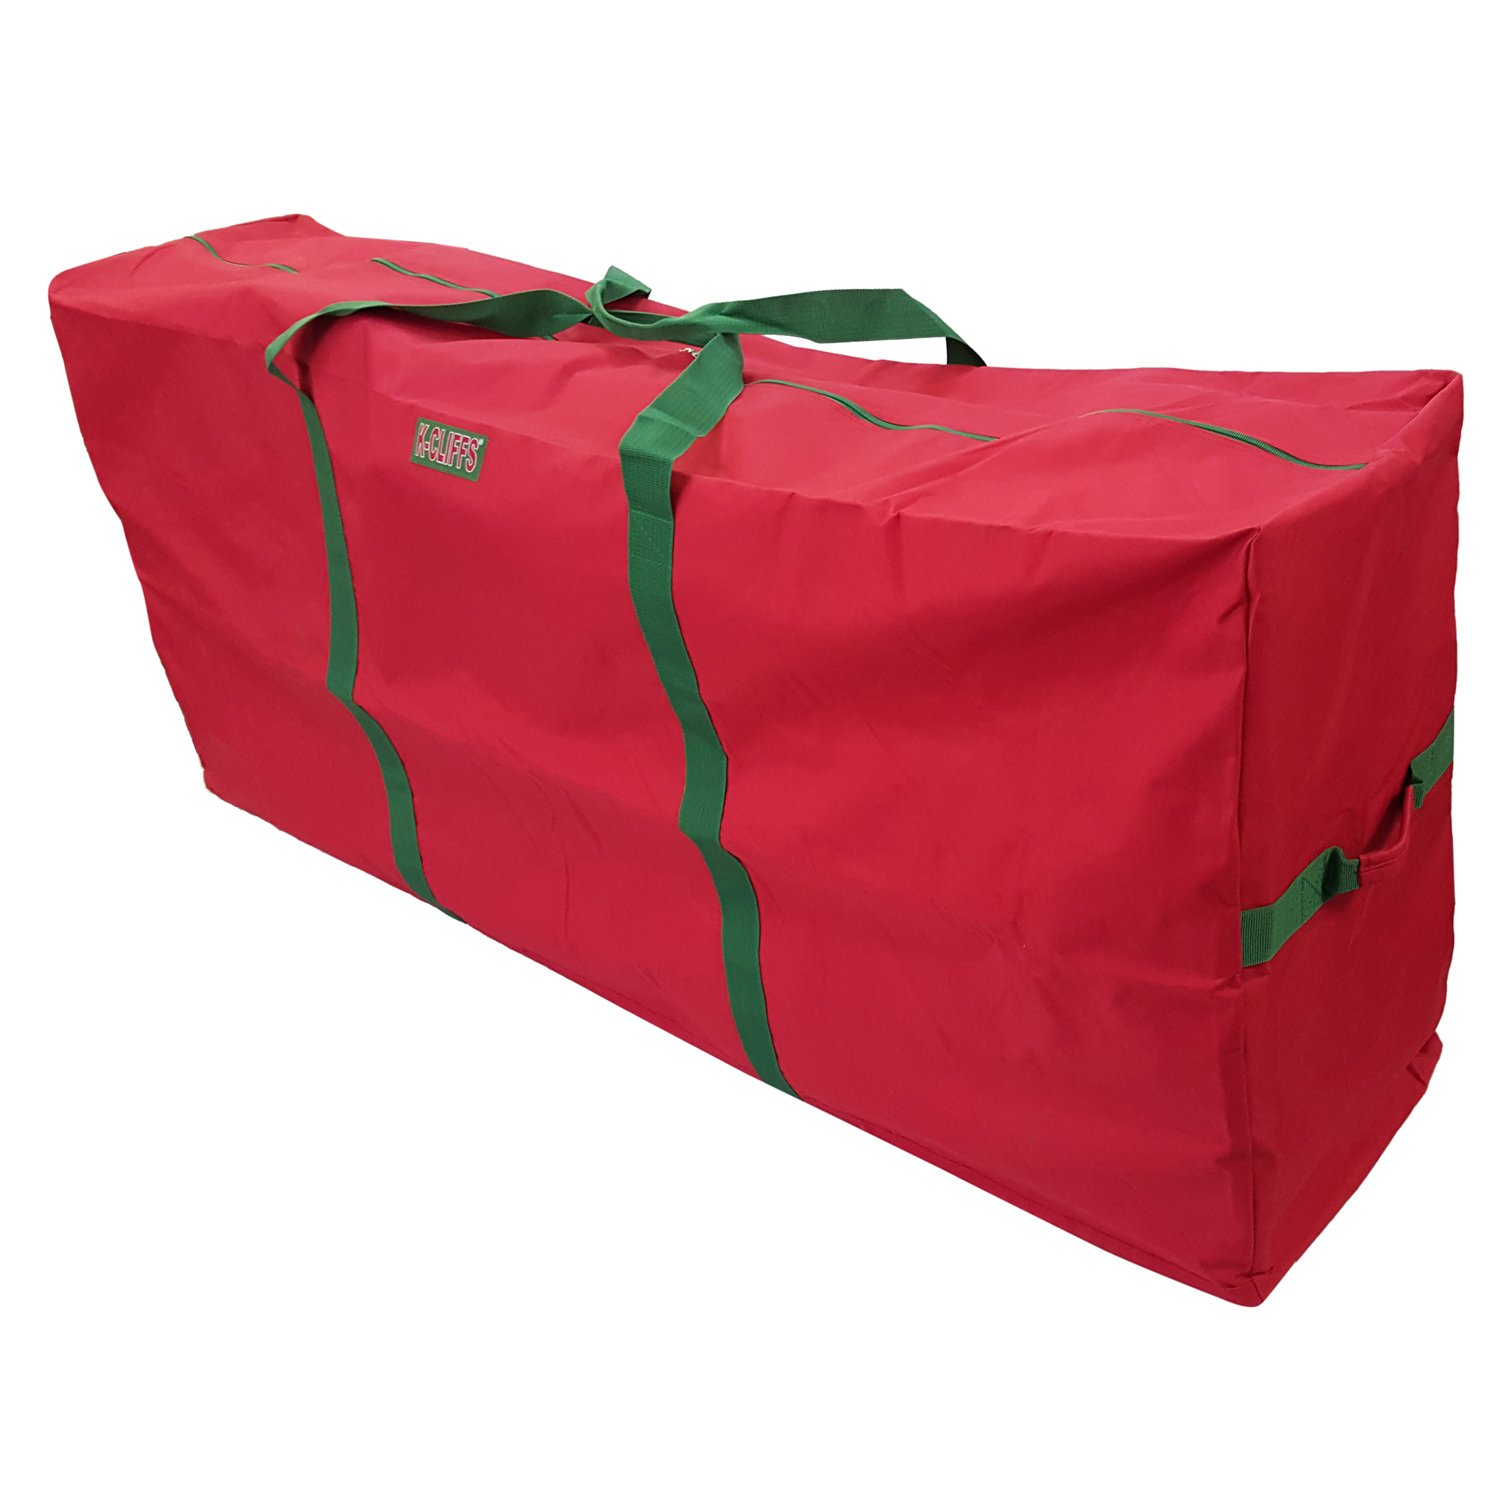 "K-Cliffs Heavy Duty Christmas Tree Storage Bag Fit Upto 9 Foot Artificial Tree Holiday Red Extra Large Dimensions 65'' x 30"" x 15'' by Praise Start"